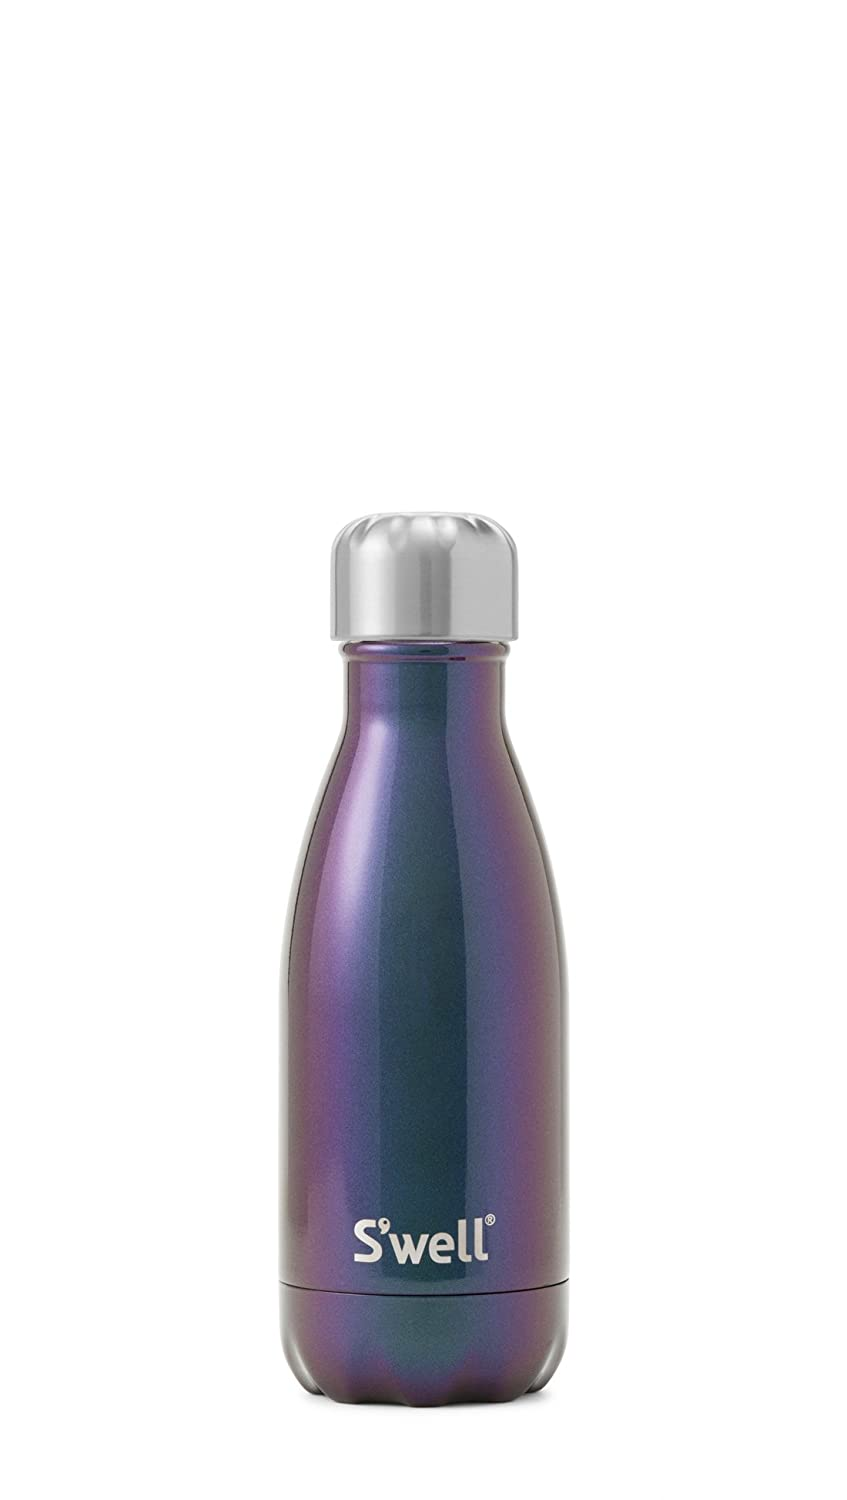 S'well Vacuum Insulated Stainless Steel Water Bottle, Double Wall, 9 oz, Neptune S'well GANT-09-A16